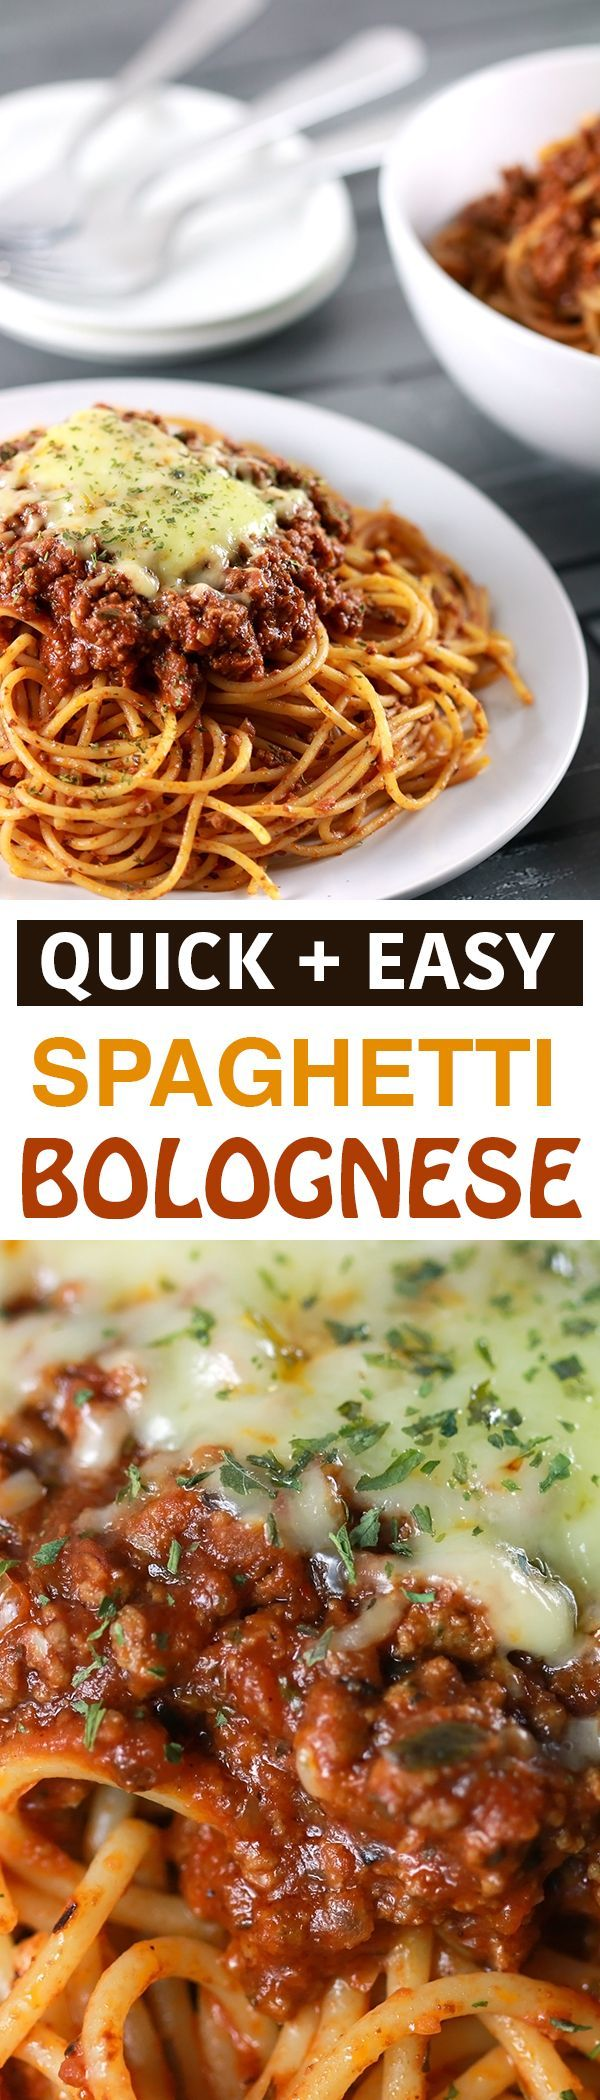 If there is one recipe for Spaghetti Bolognese that you need to know, this is it! You'll be amazed that this simple recipe can create such a tasty pasta! | http://ScrambledChefs.com